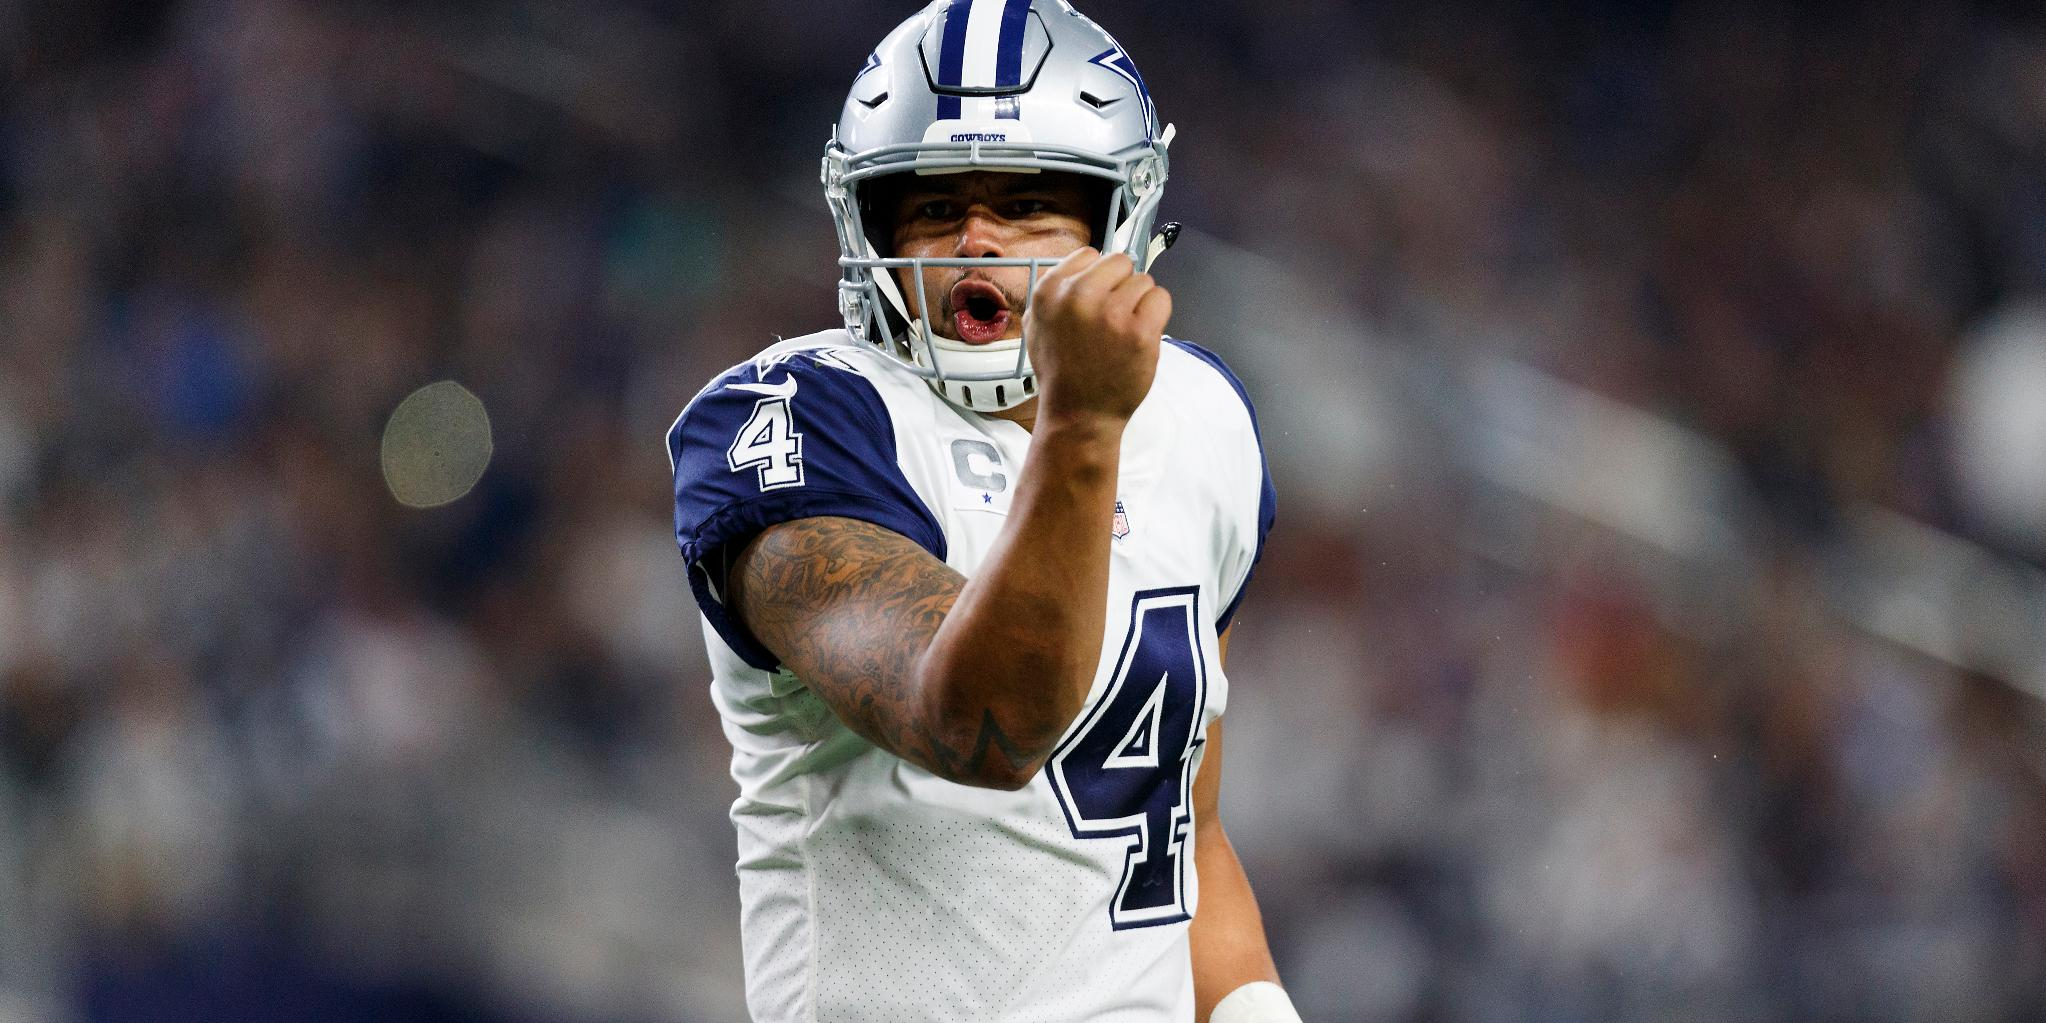 Better than Staubach. Better than Aikman. Better than Romo?   That's @dak's goal. https://t.co/9pVqWT0F0i https://t.co/BHWvYzc5zu